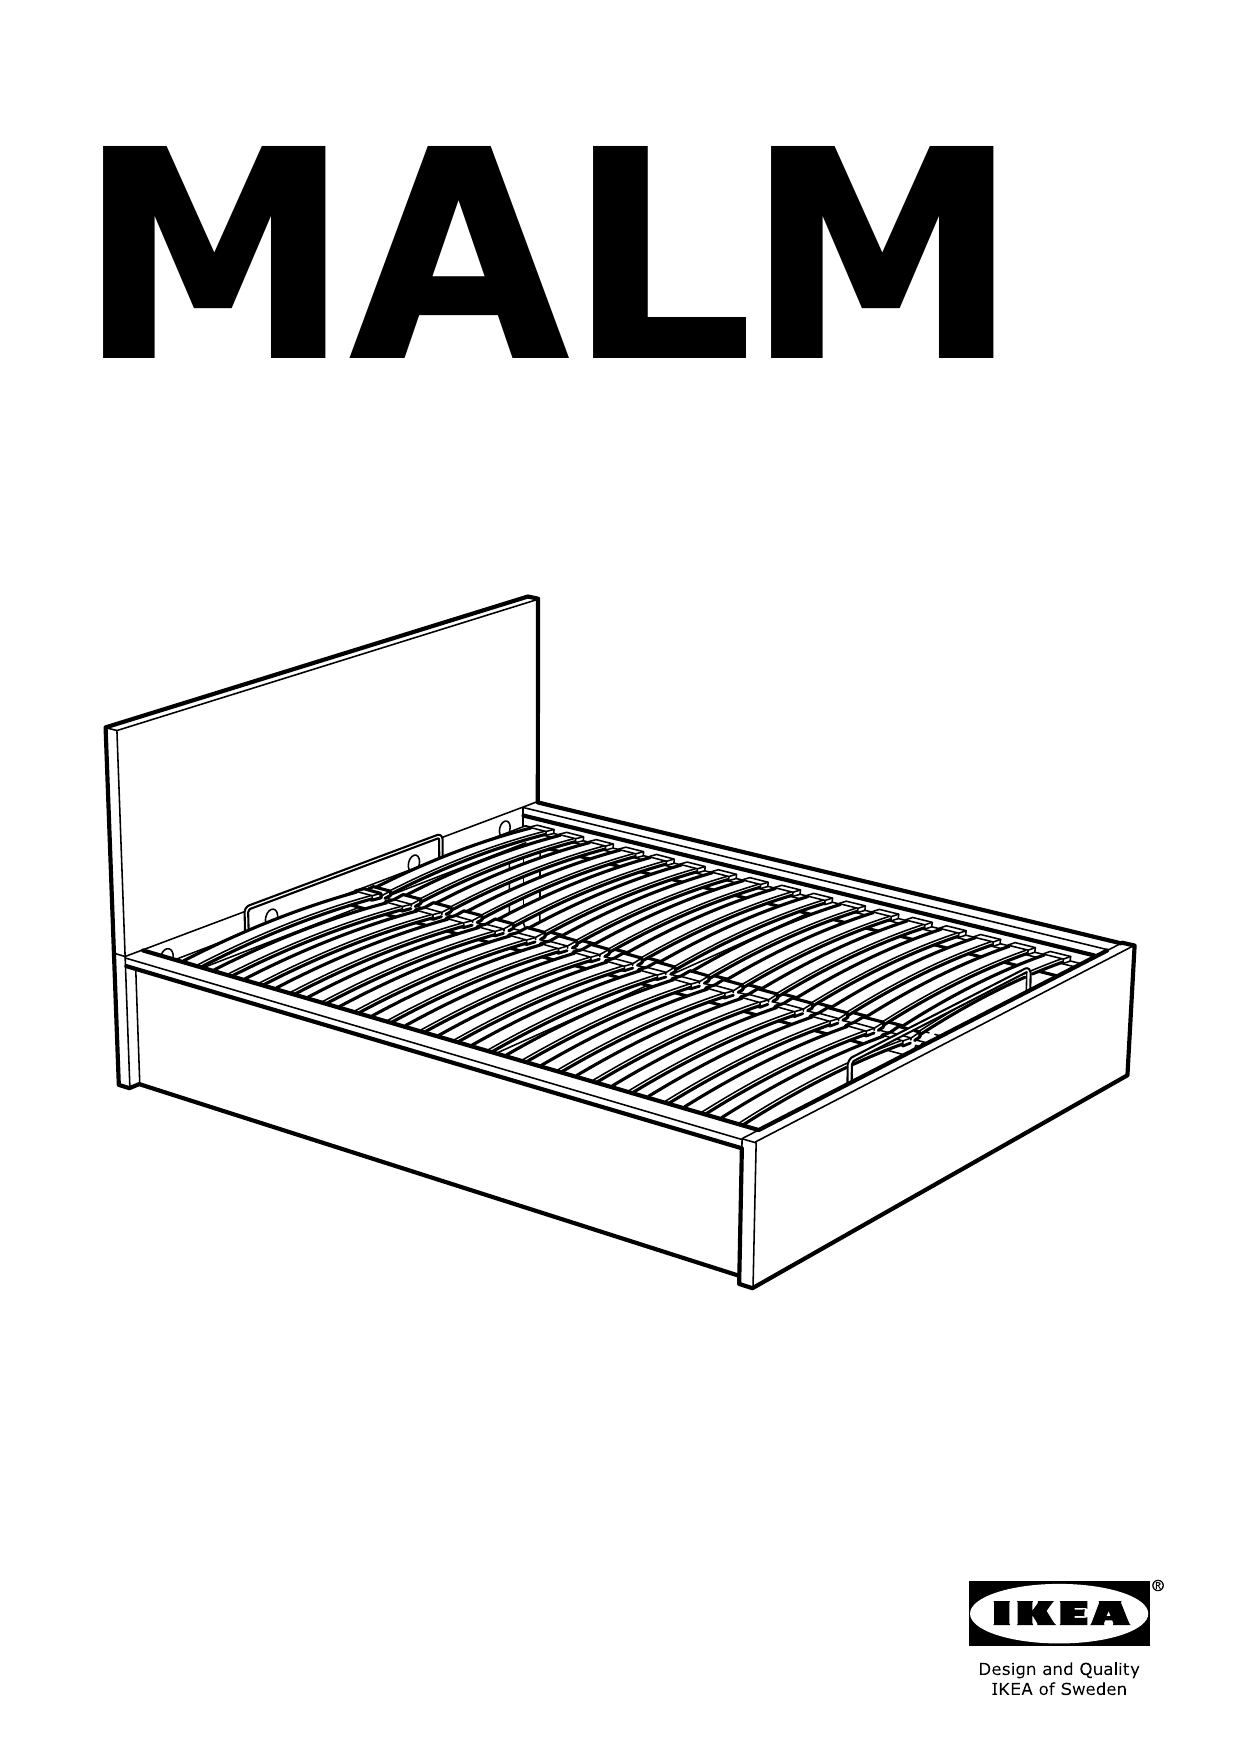 IKEA MALM Storage bed Assembly Instruction - 1